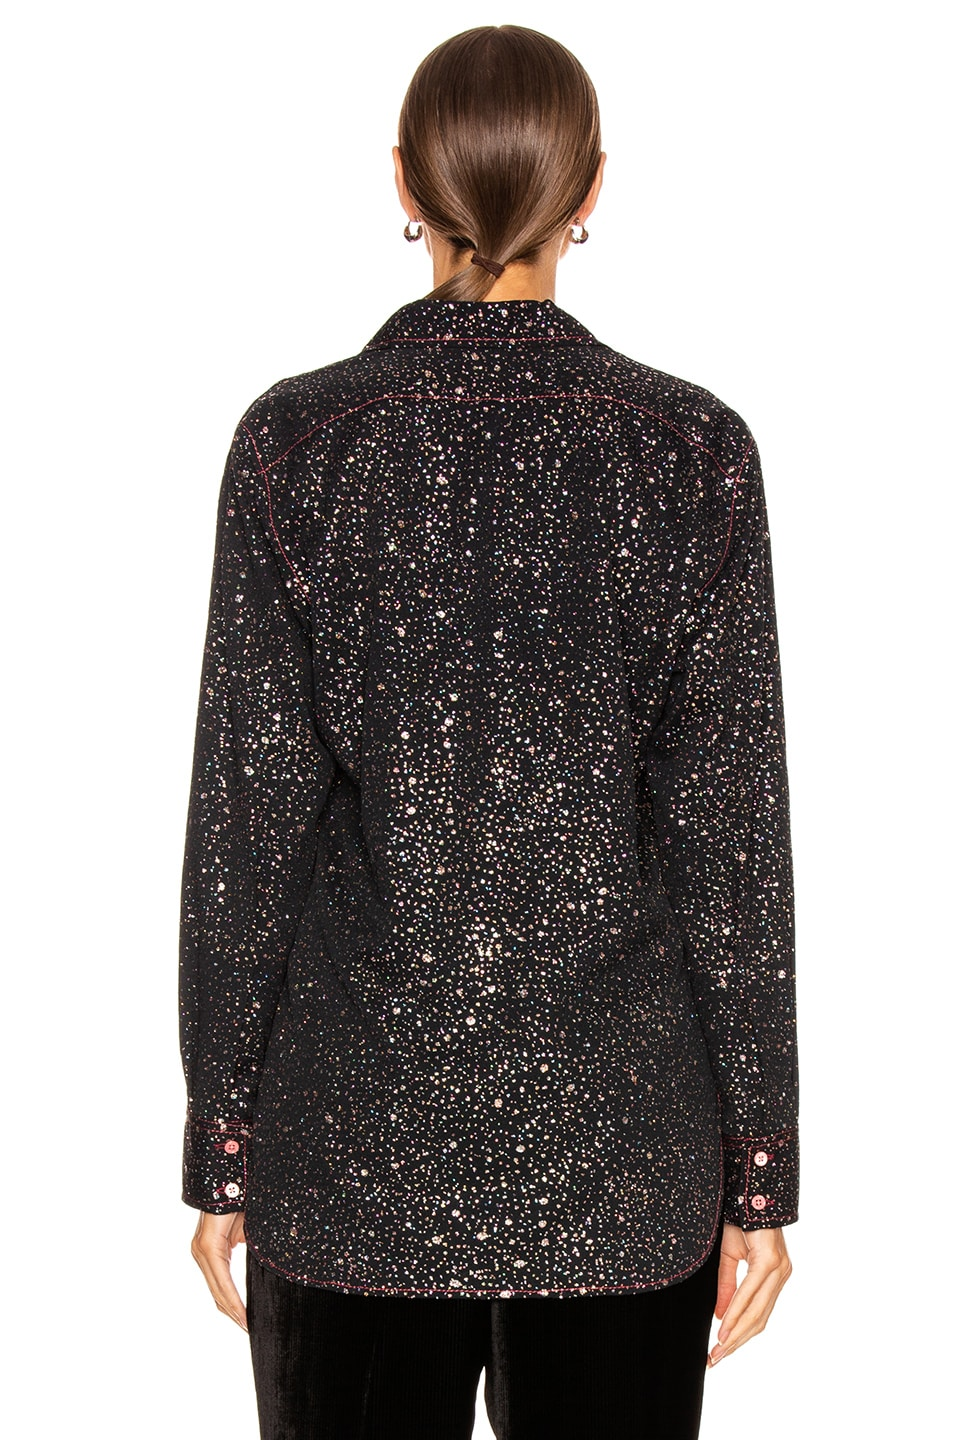 Image 3 of Sies Marjan Sander Glitter Marocaine Shirt in Black